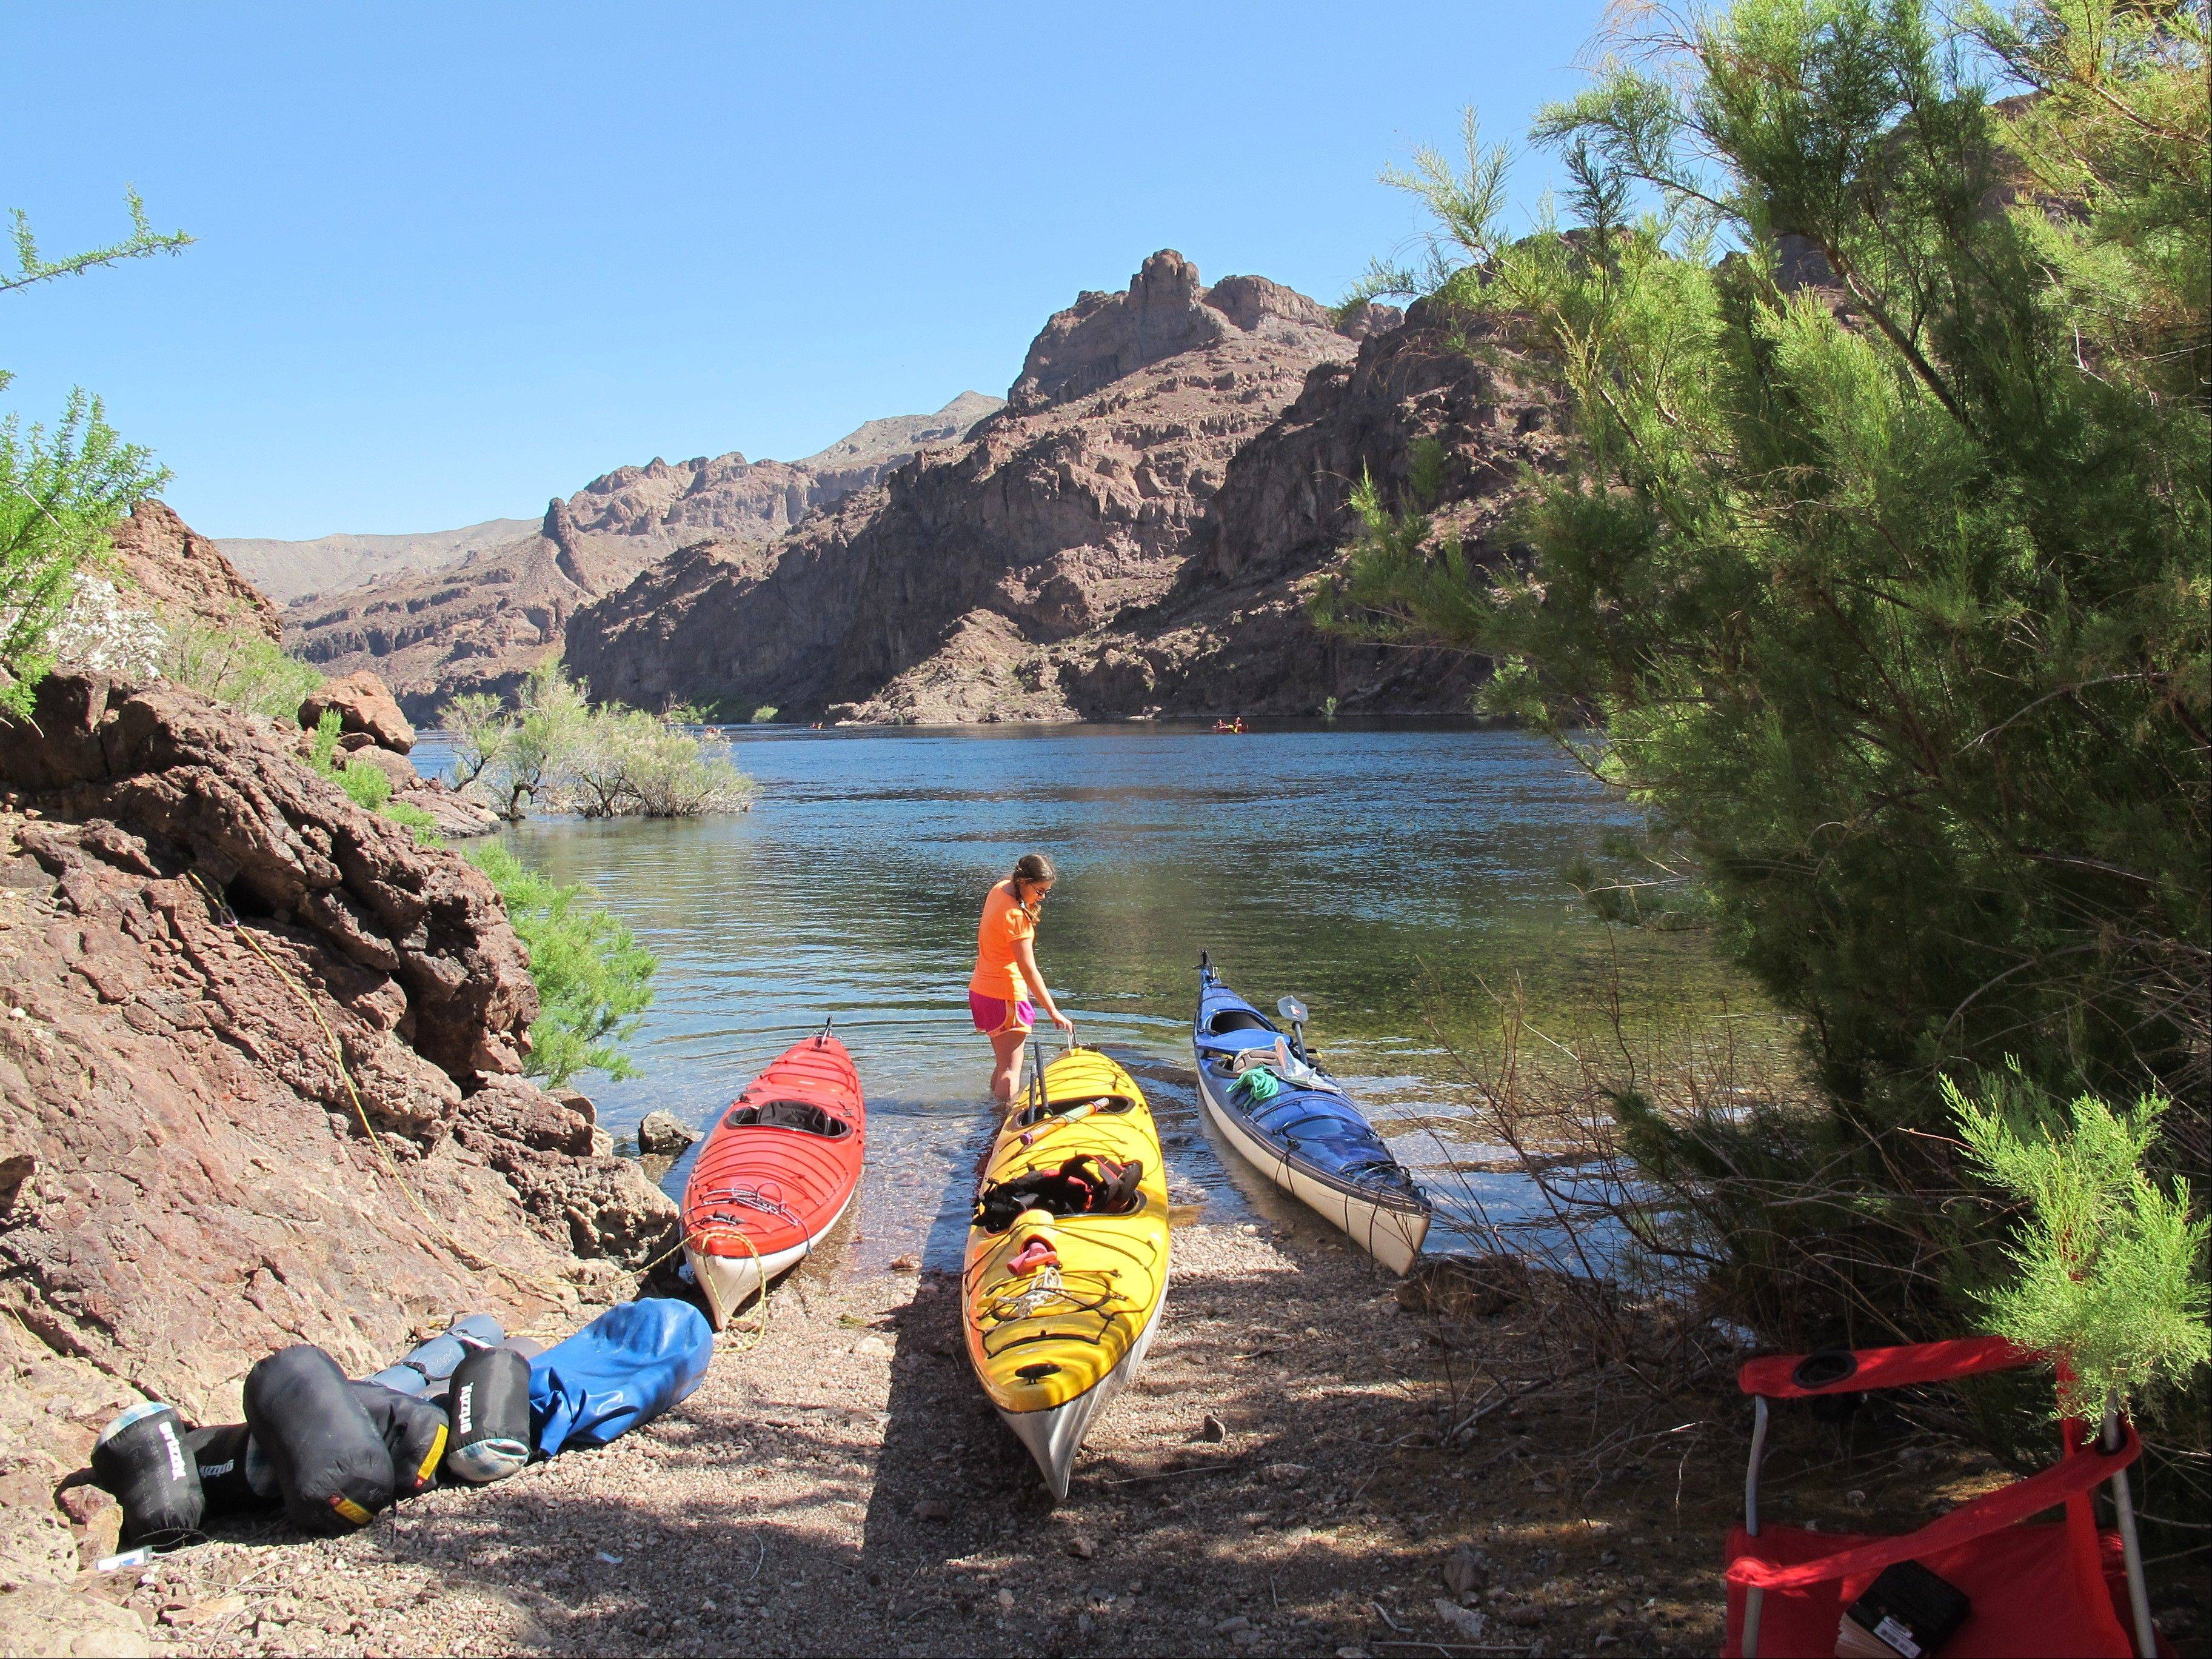 A kayaker with boats on the shore of the Colorado River in Nevada. Outfitters can pick you up at a hotel in Las Vegas first thing in the morning and have you paddling the river through the Black Canyon some 30 miles from Las Vegas before lunch.